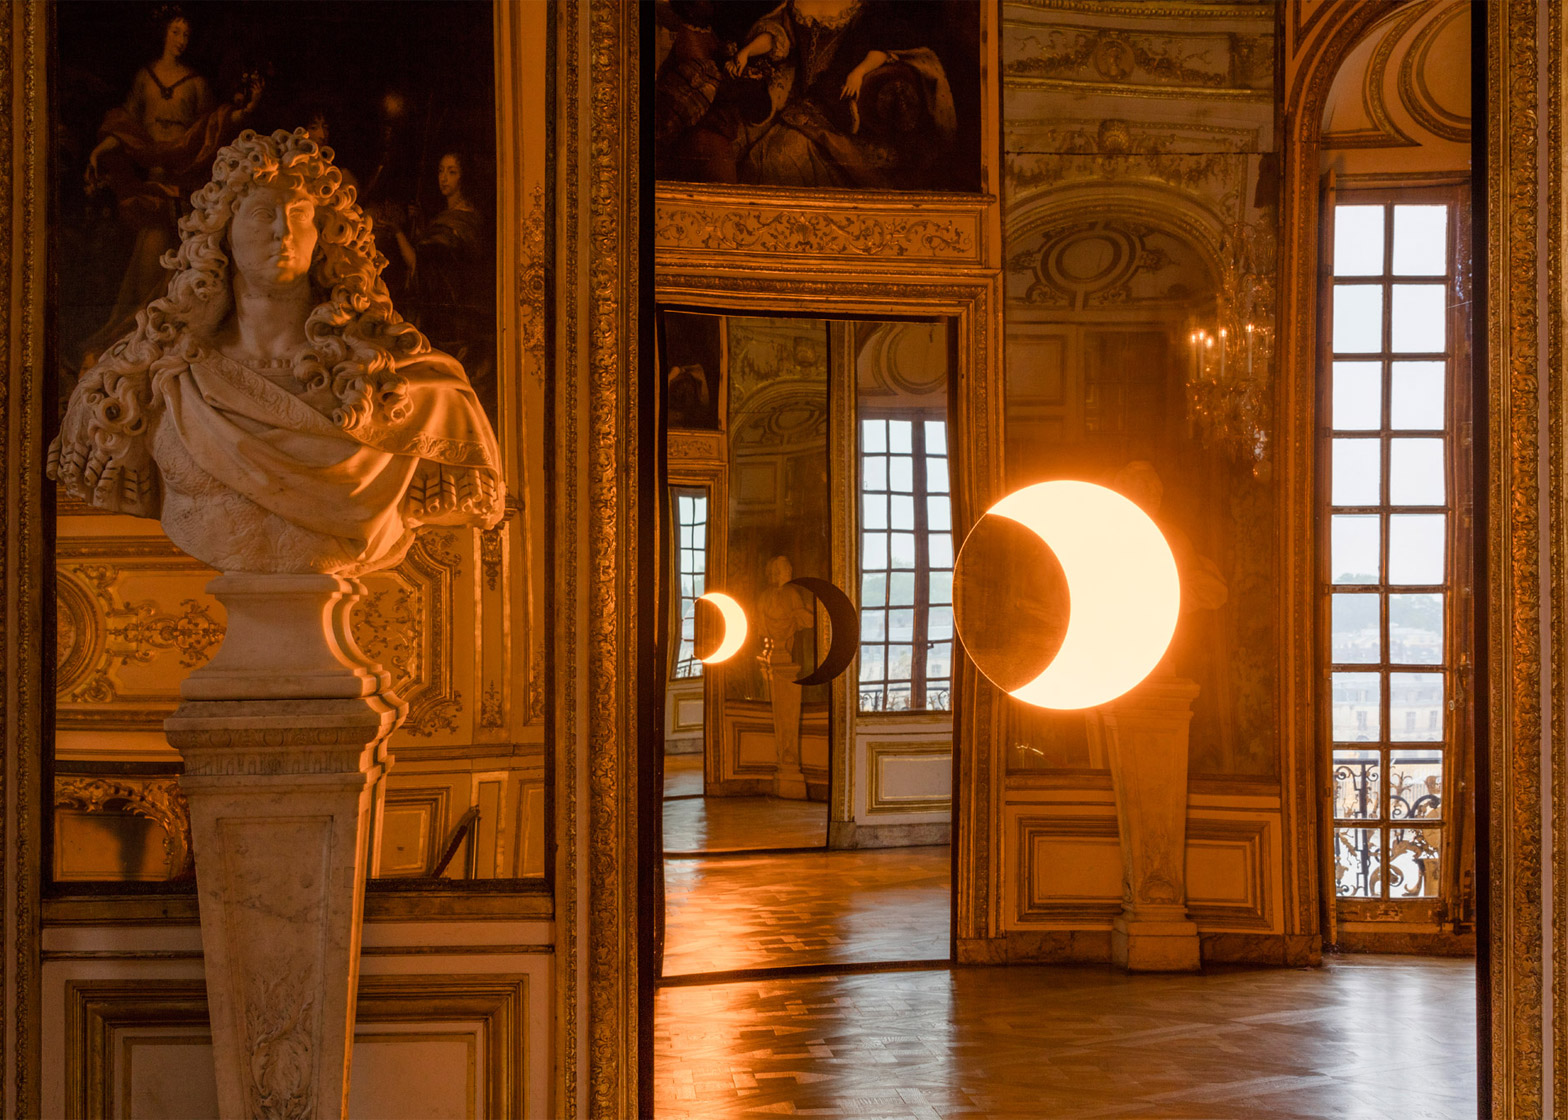 Deep Mirror by Olafur Eliasson at the Palace of Versailles, France